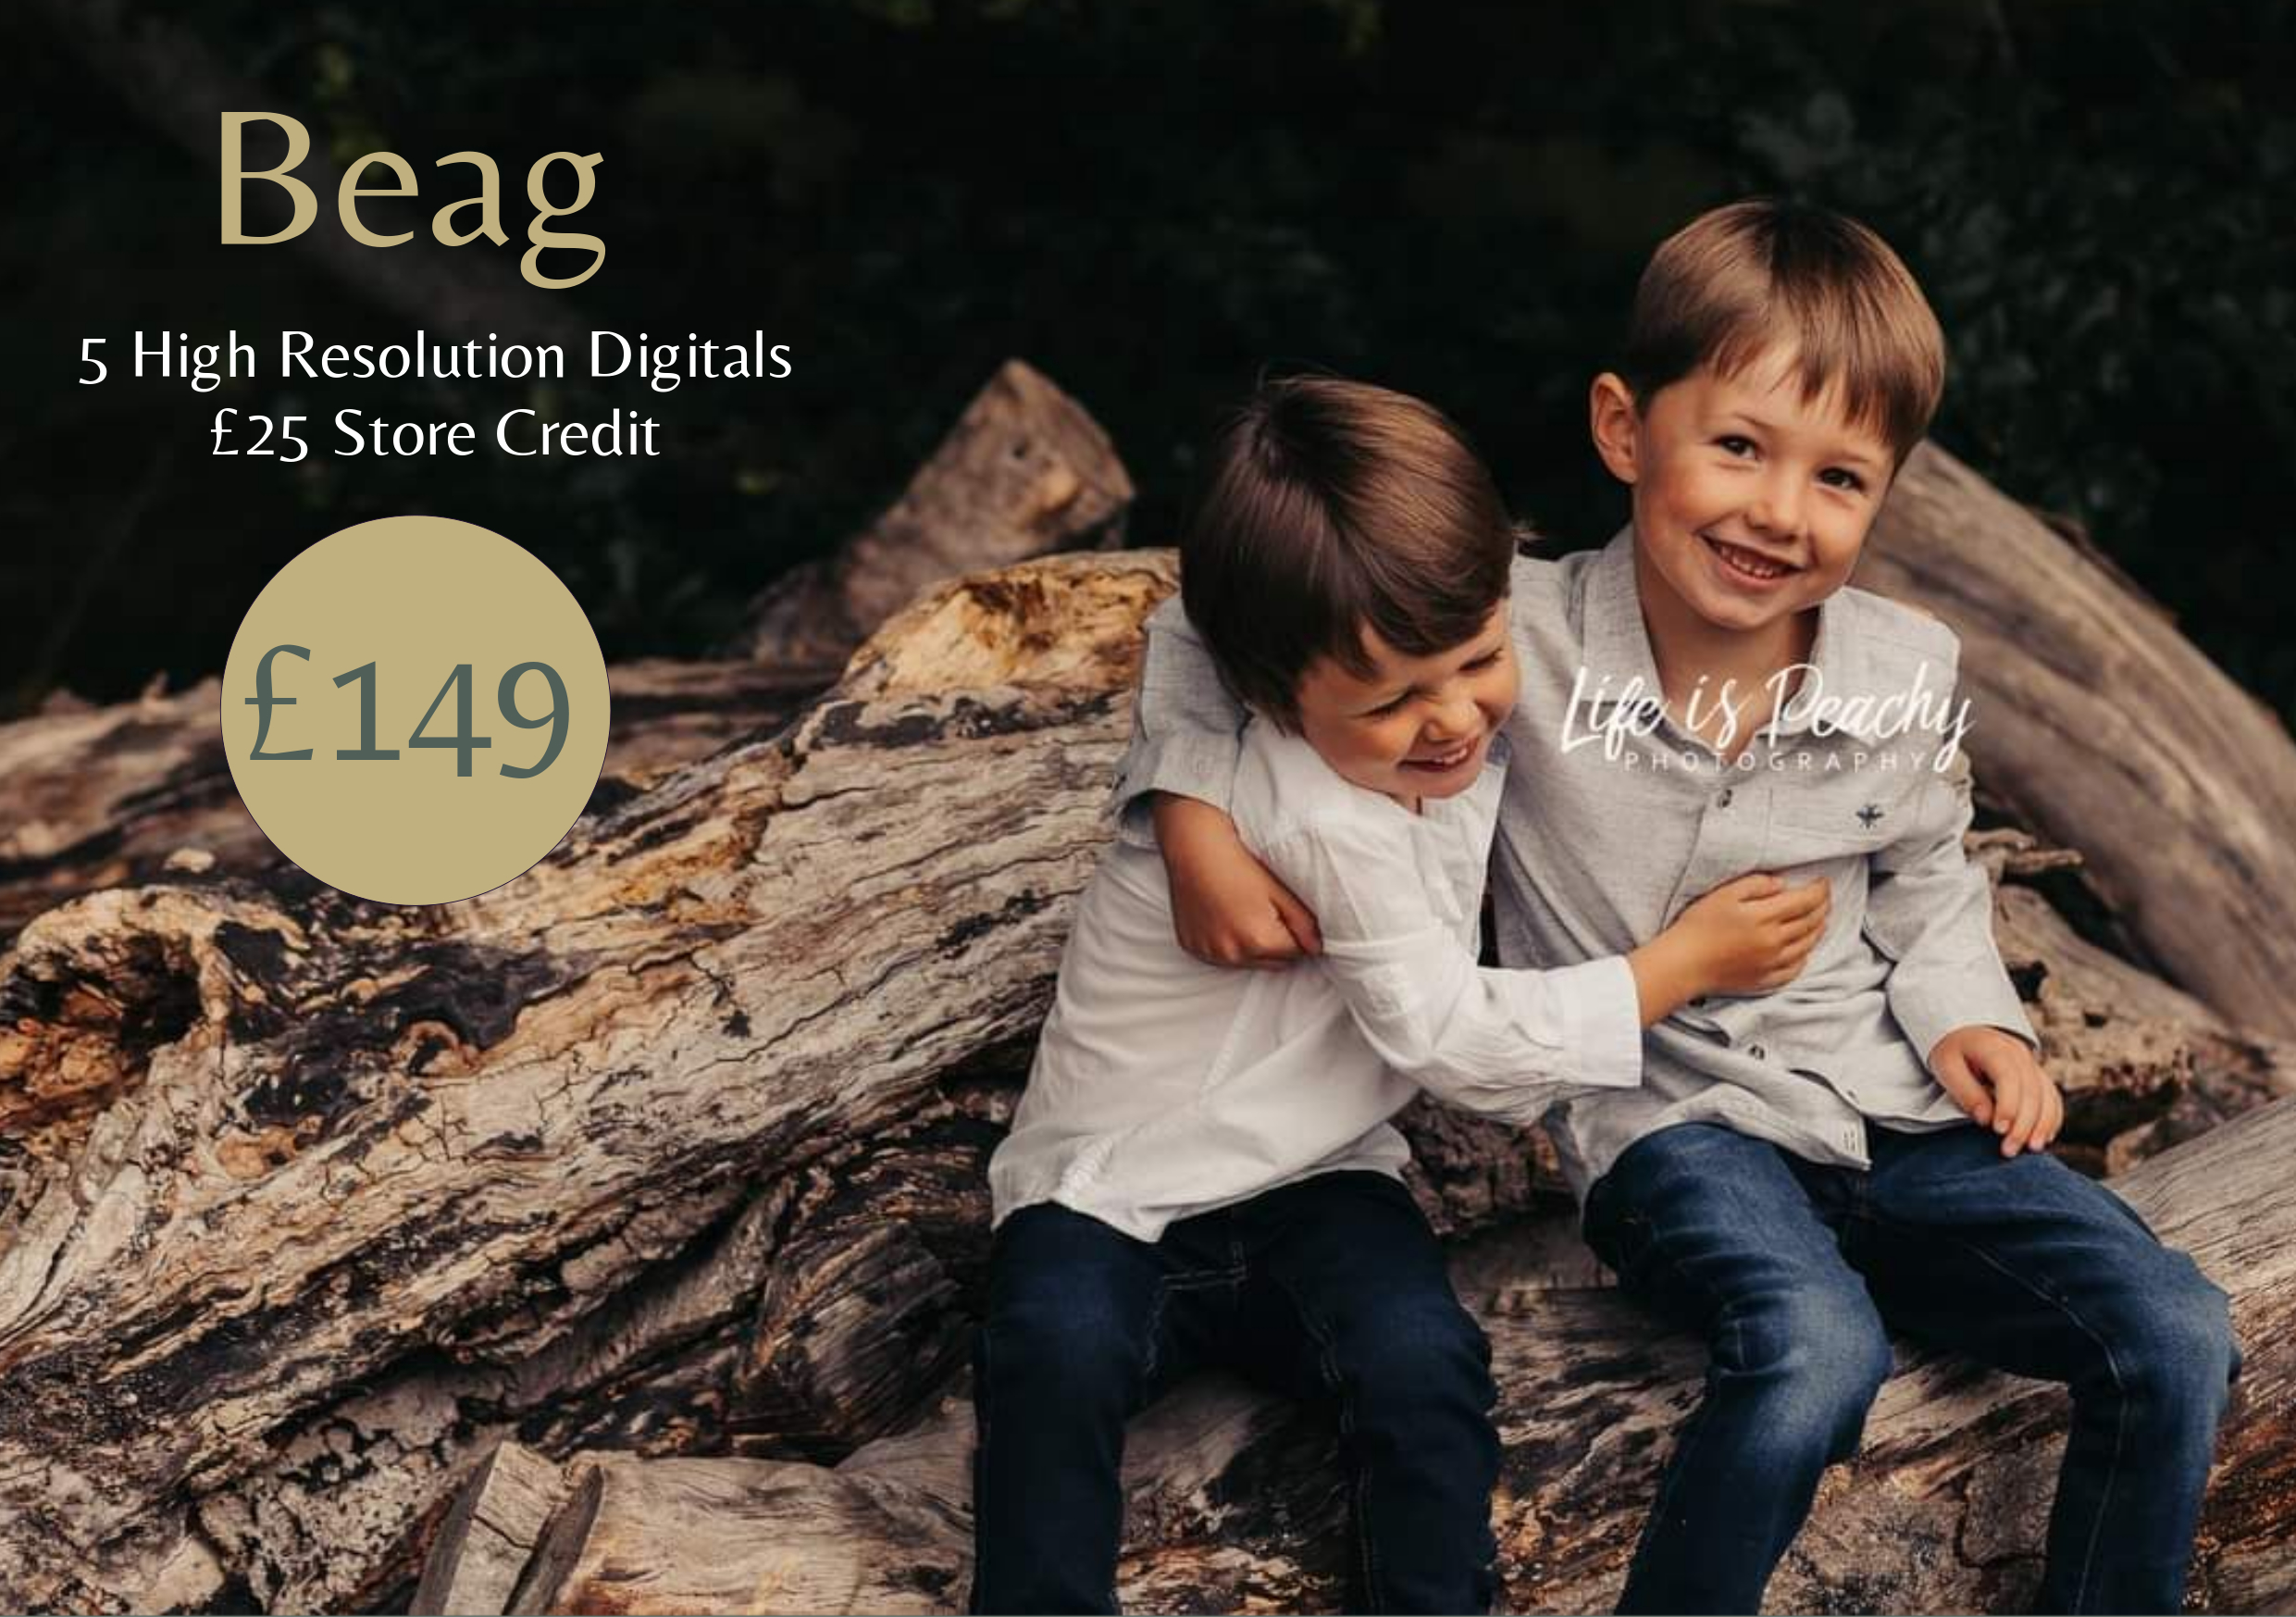 Beag Pricing Information